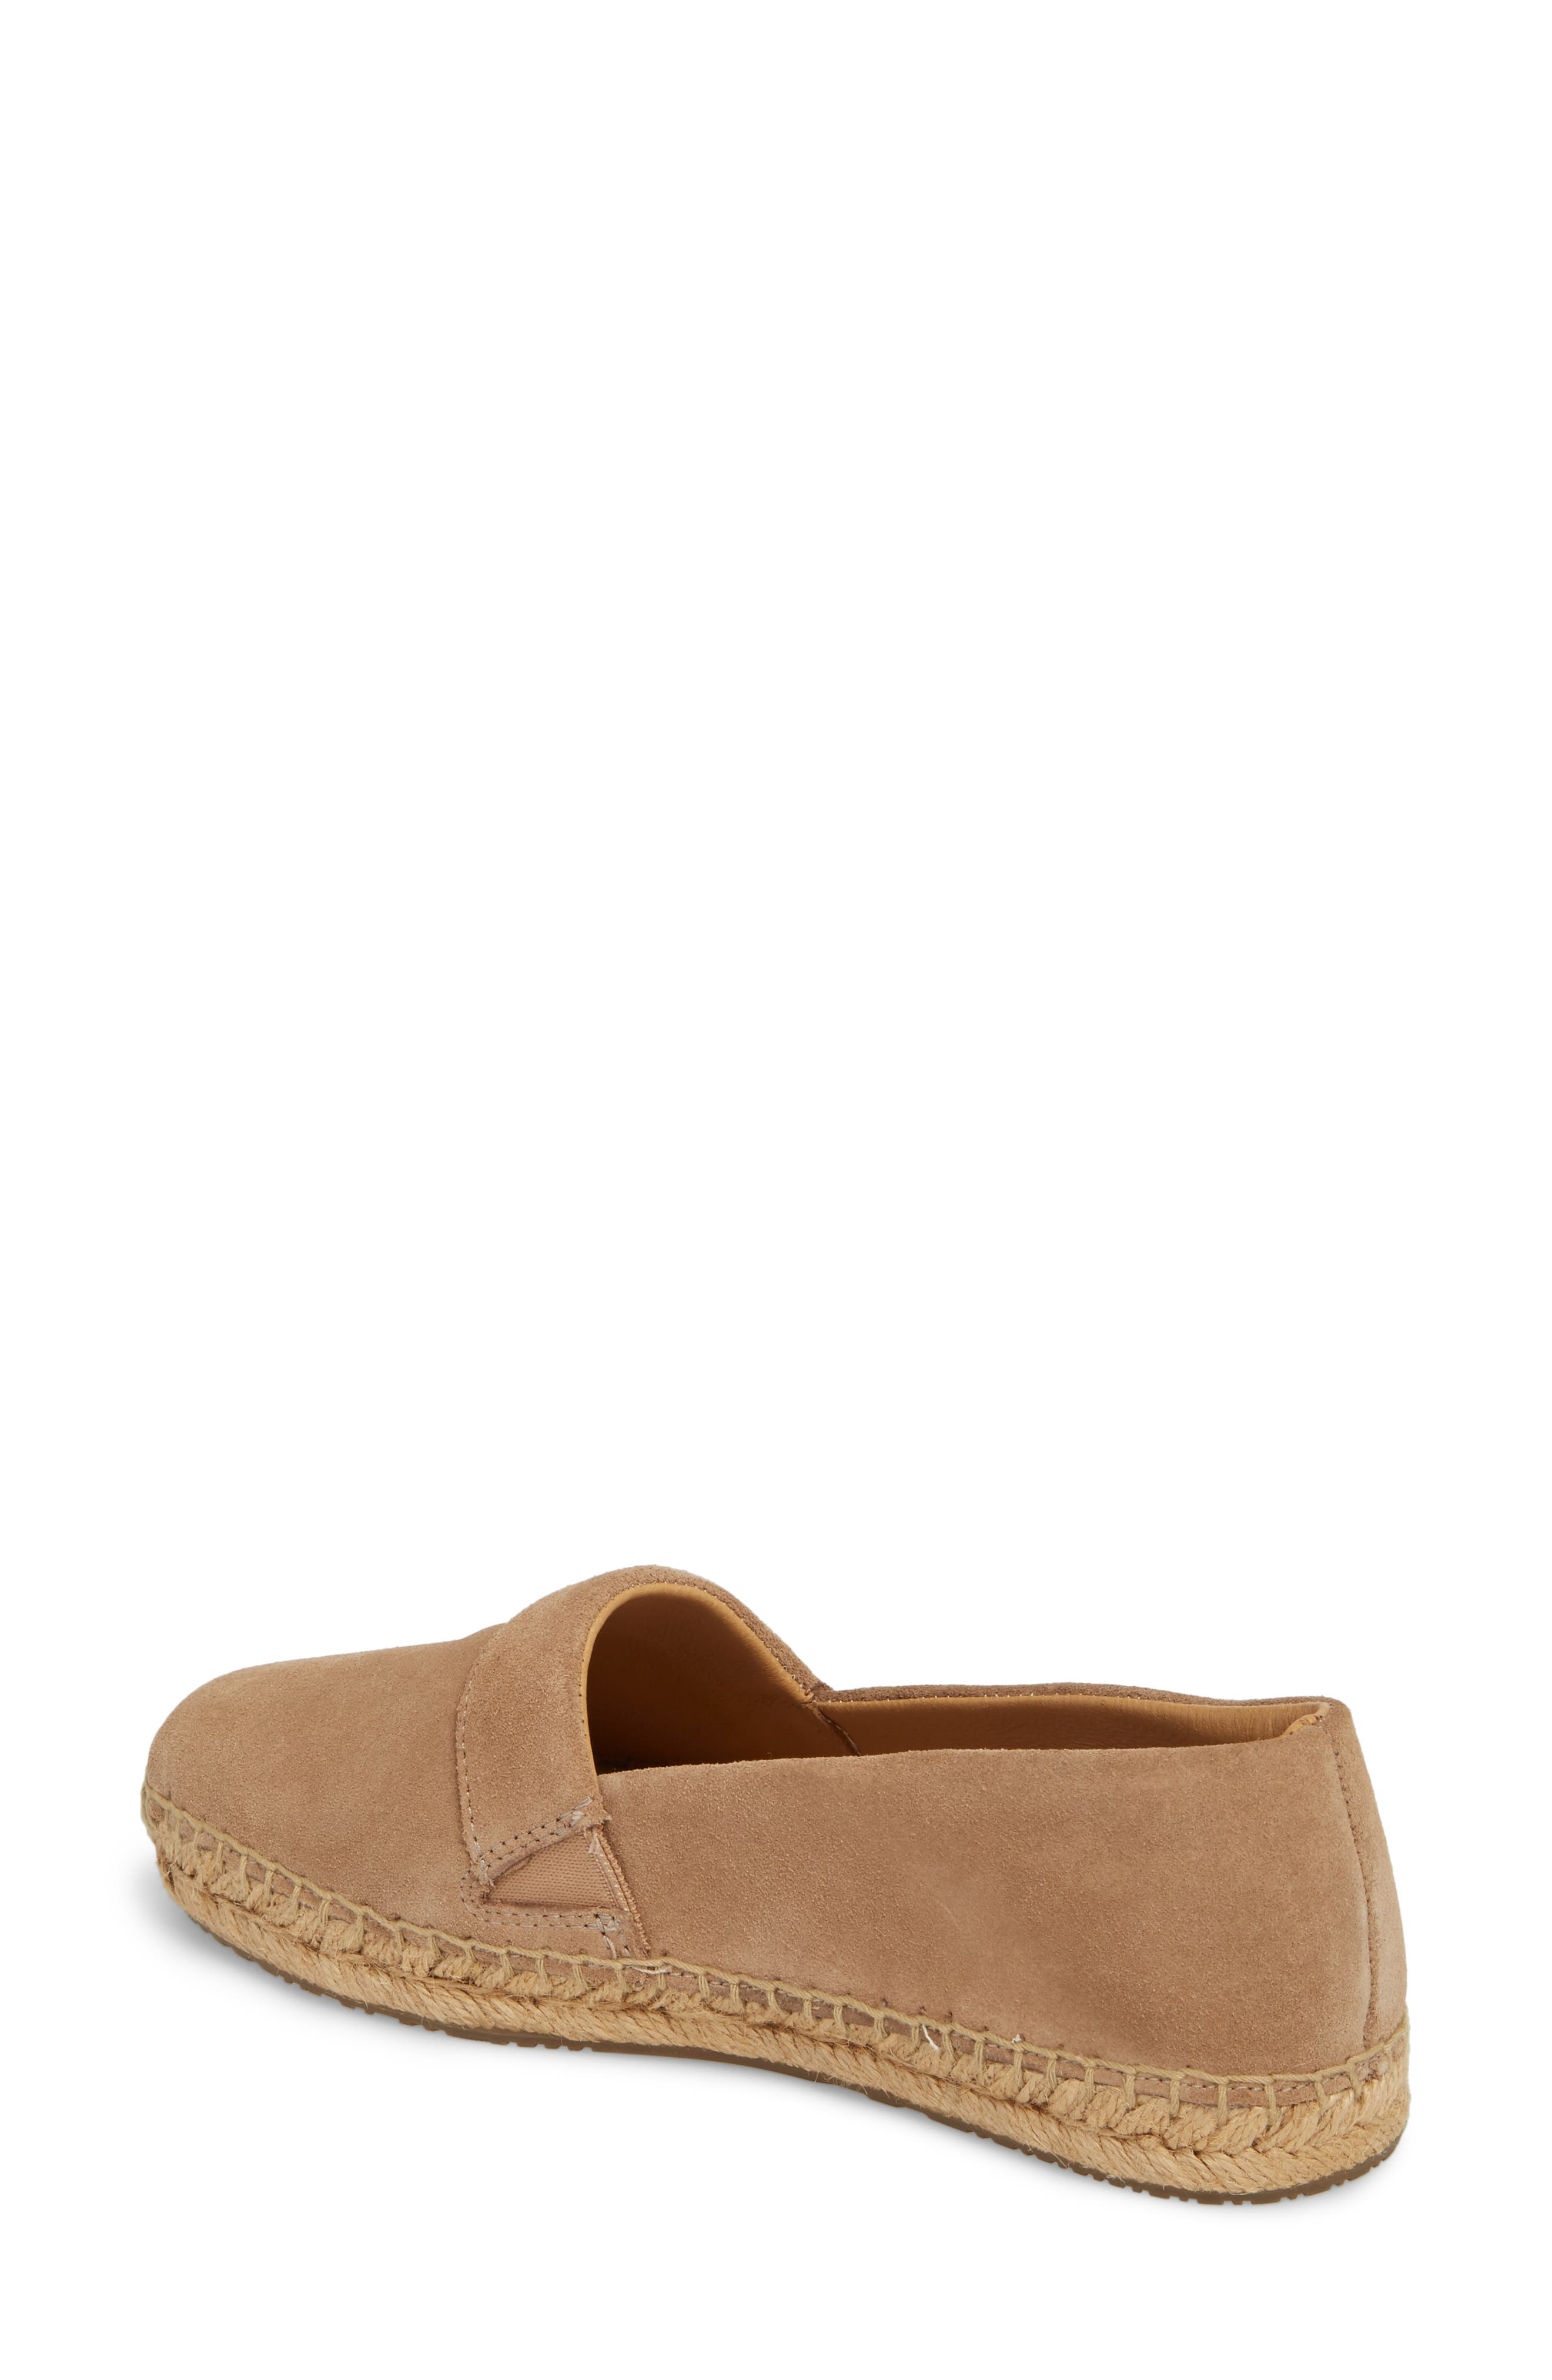 Reneda Espadrille Slip-On,                             Alternate thumbnail 2, color,                             250